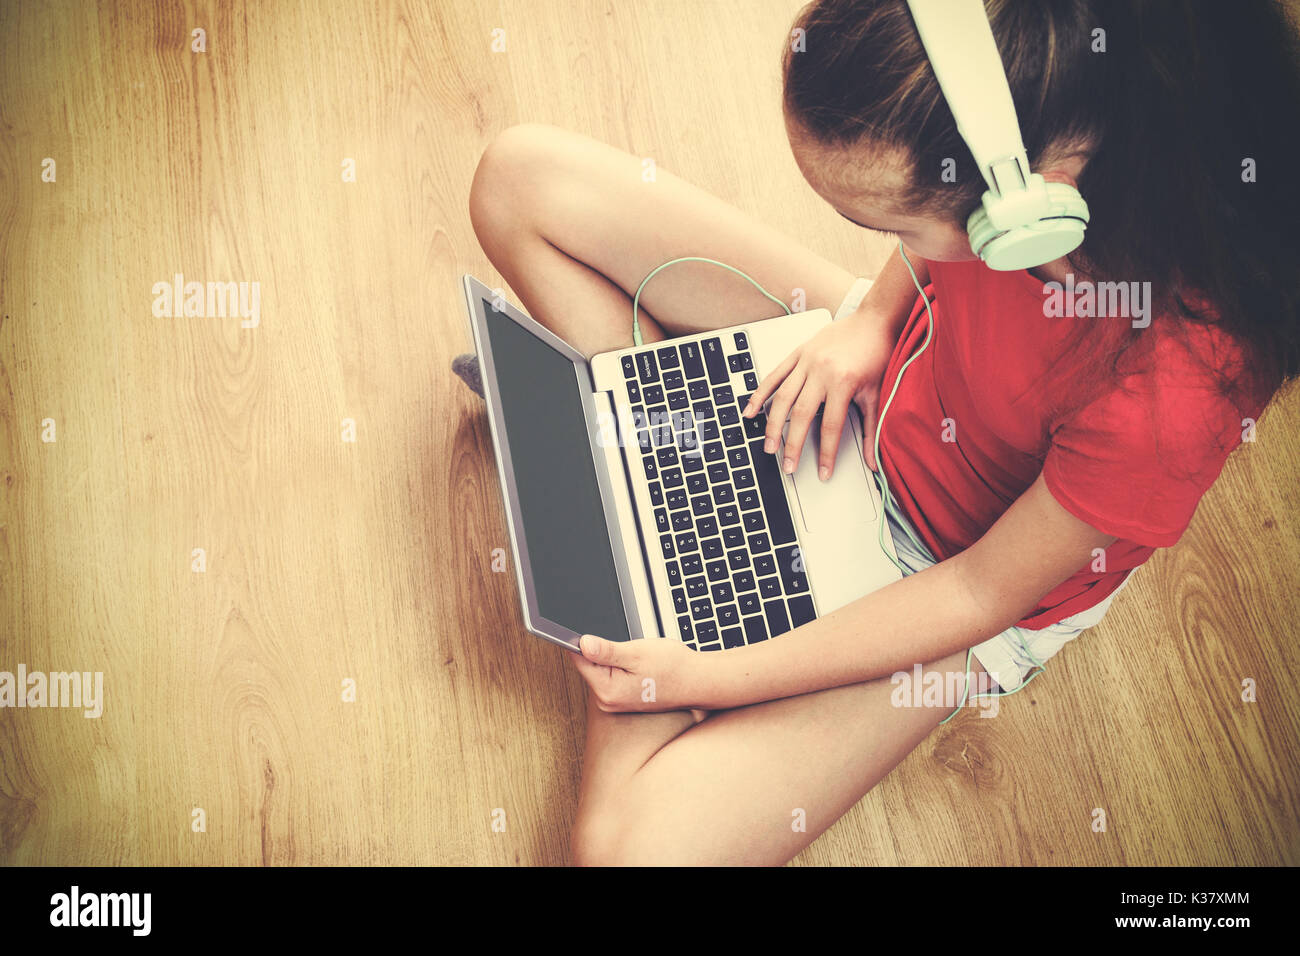 High angel view of a girl sitting on the floor and listening to music on her laptop (vintage effect). - Stock Image